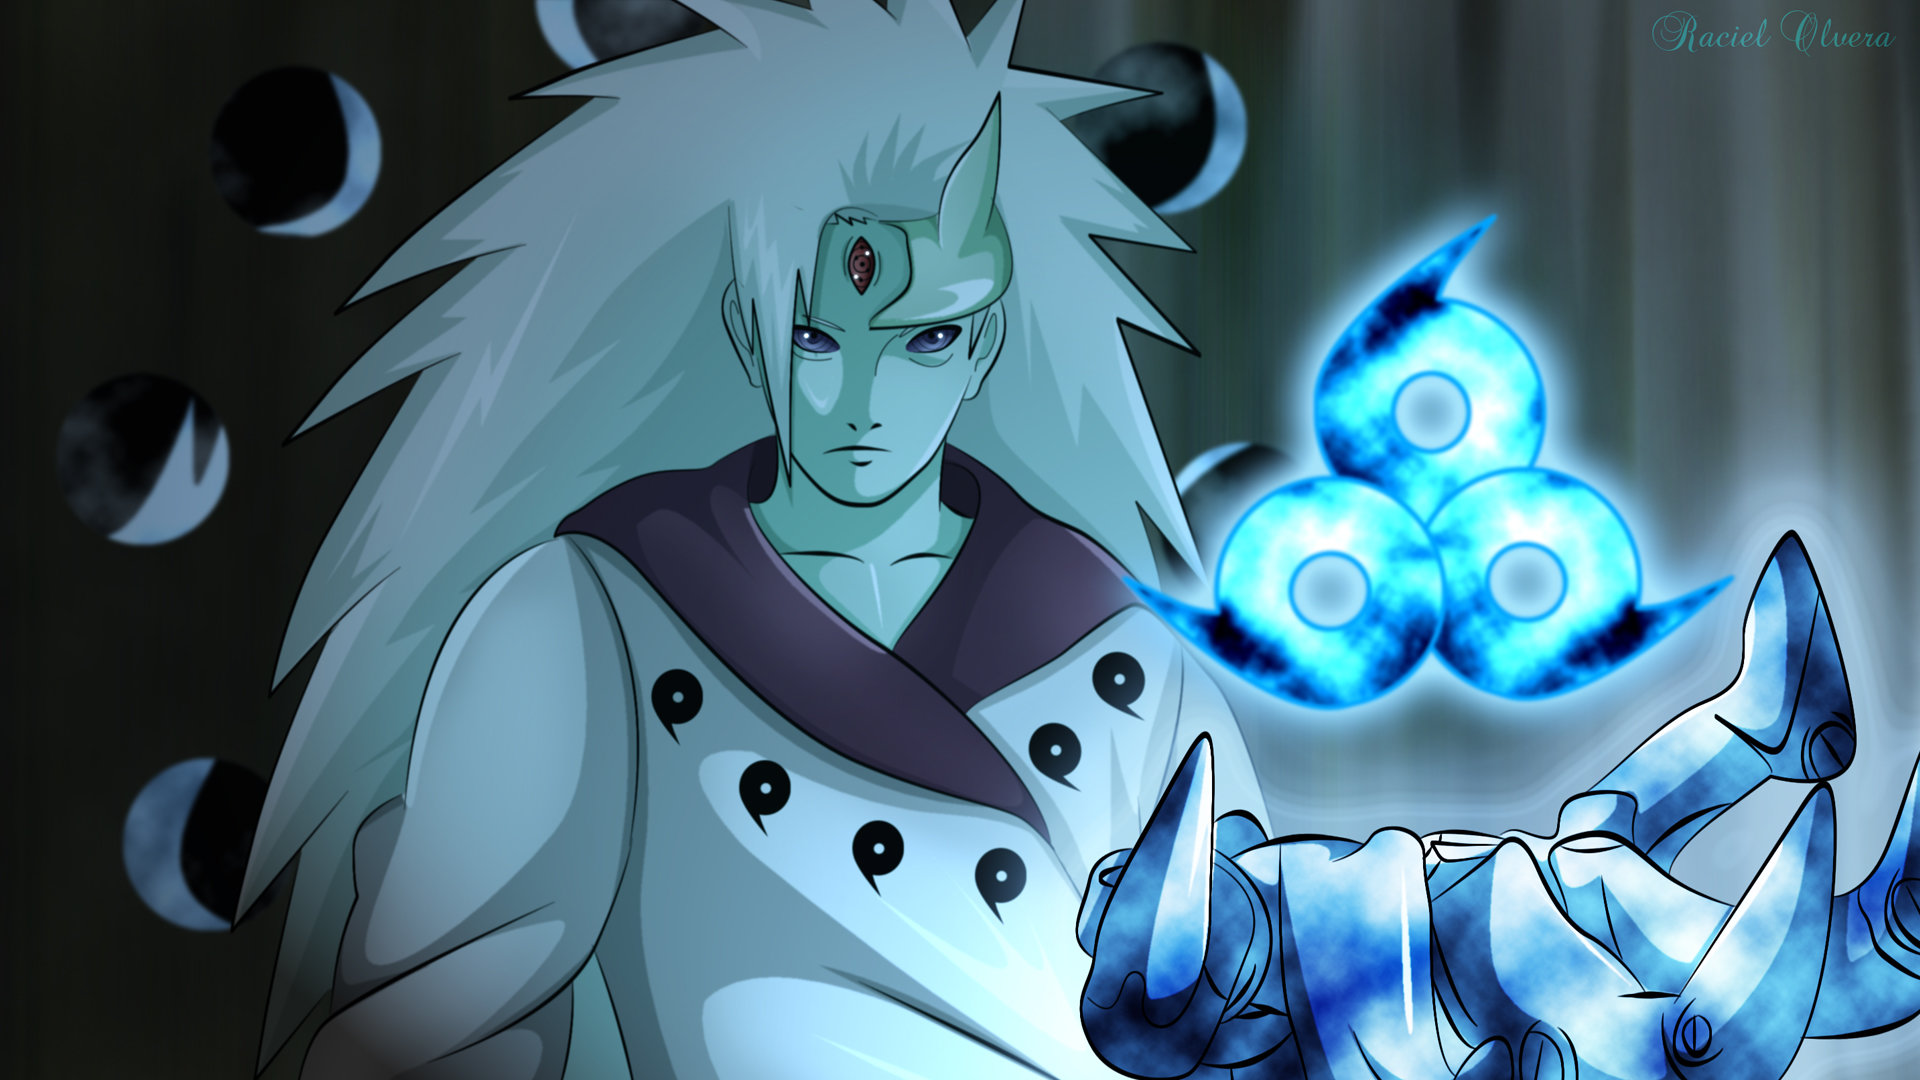 best madara uchiha wallpaper id 395538 for high resolution full hd